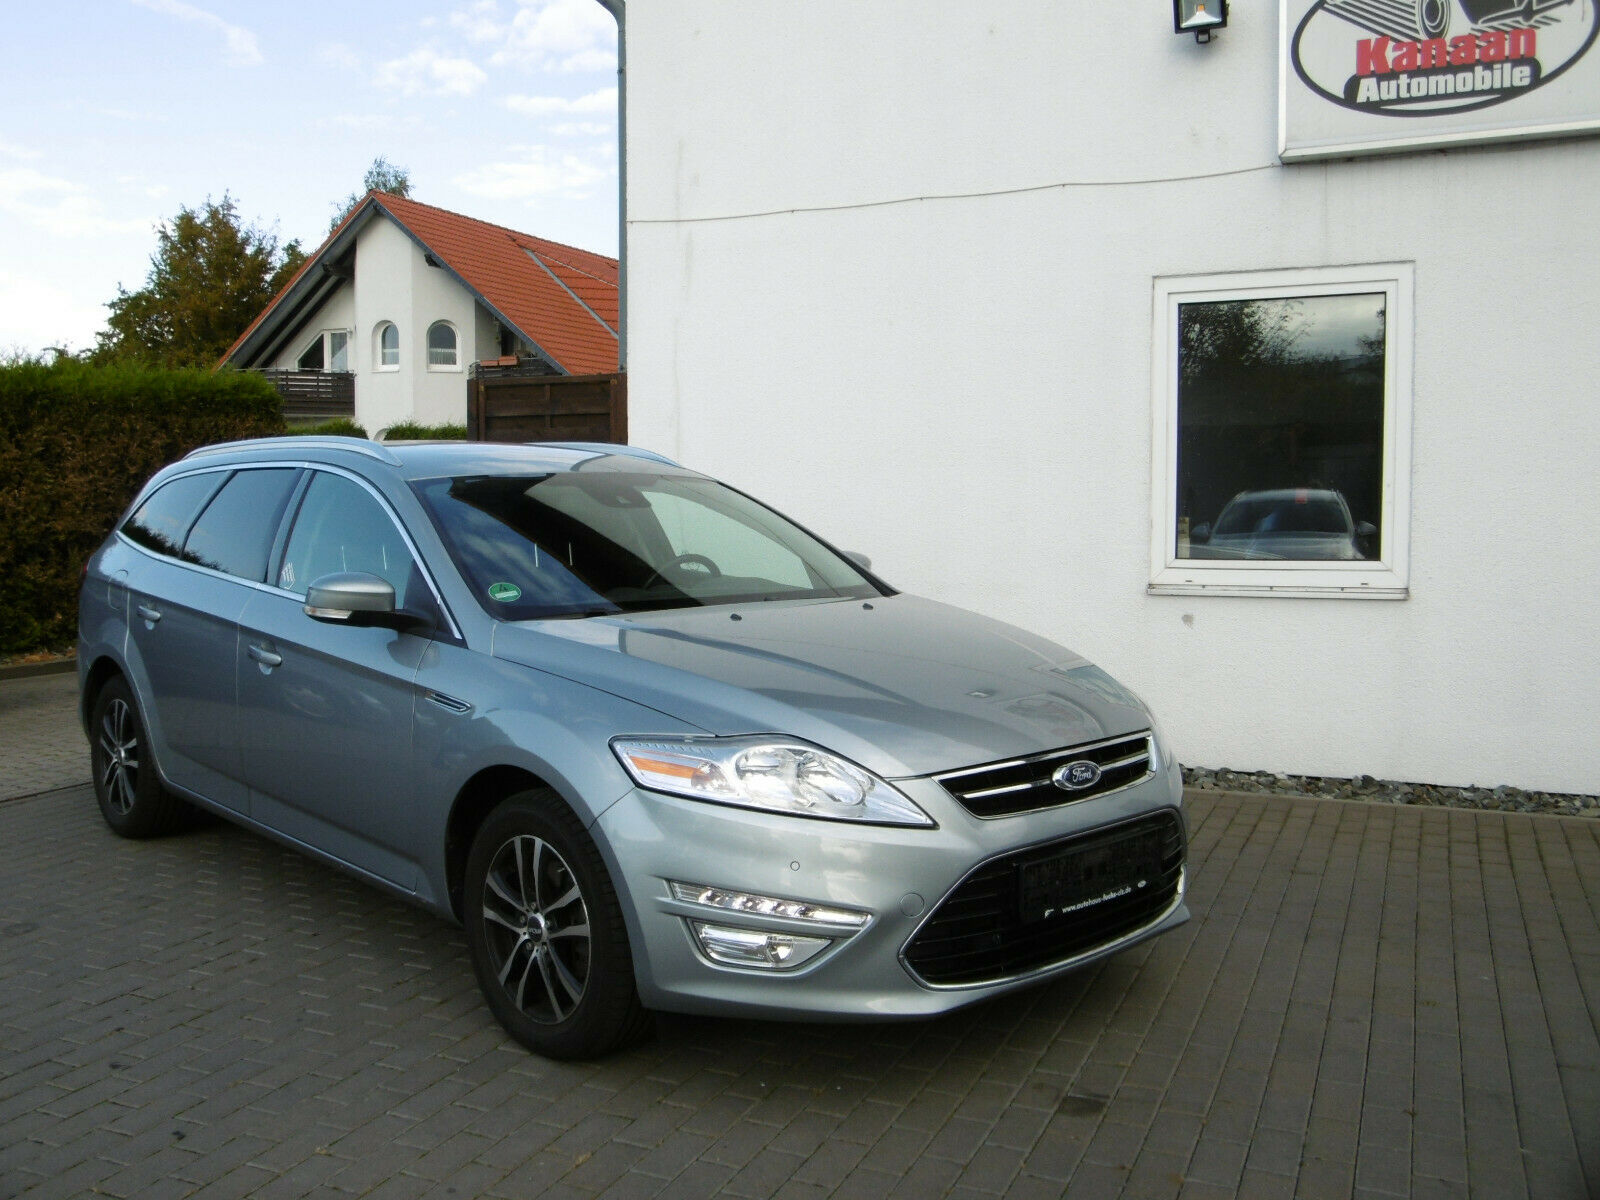 FORD Mondeo Turnier 1.6TDCI Business Edition Navi LED